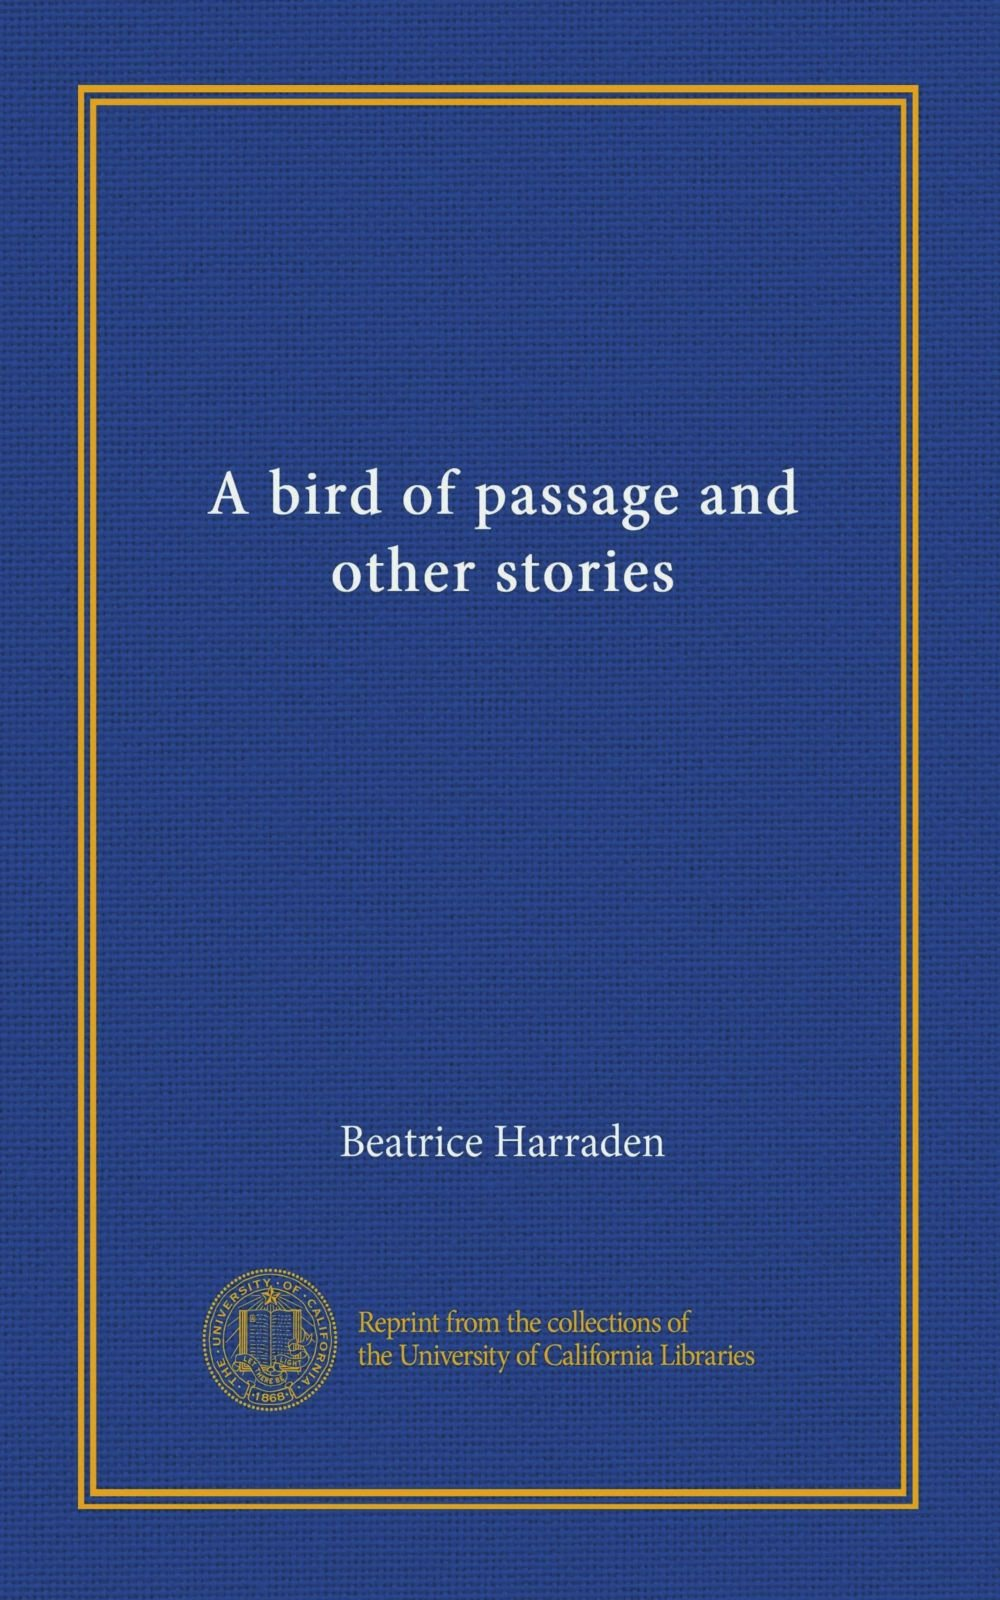 Download A bird of passage and other stories PDF